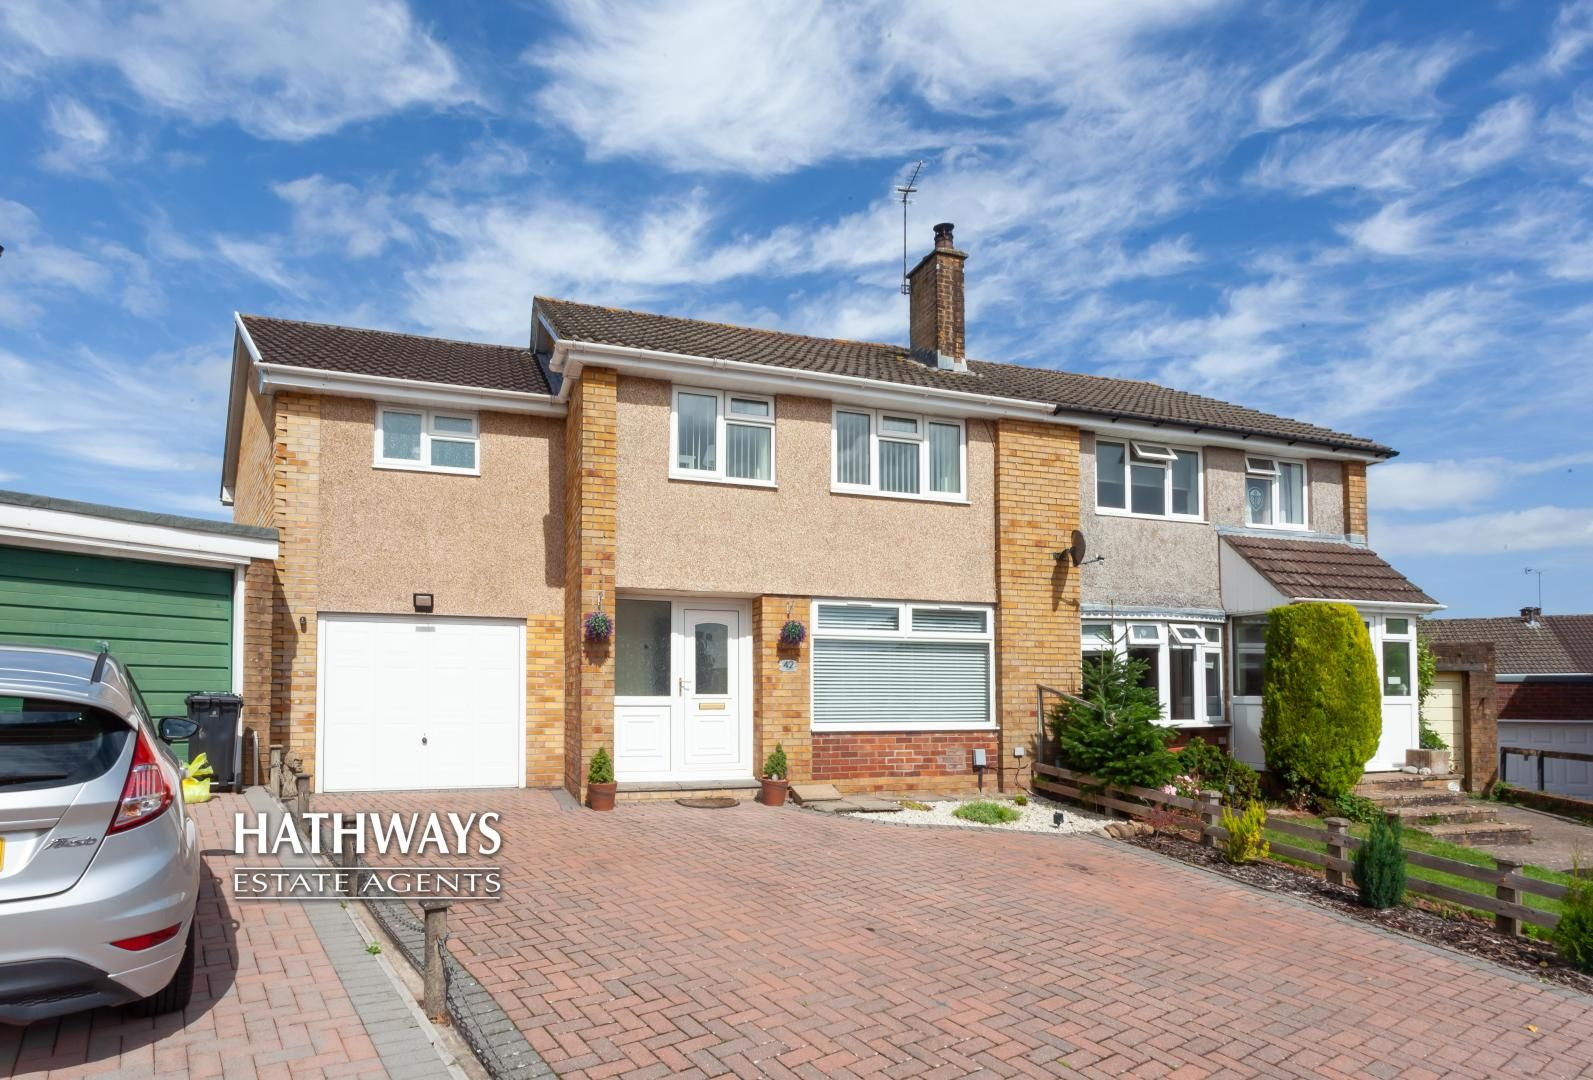 4 bed house for sale in Birchgrove Close  - Property Image 1